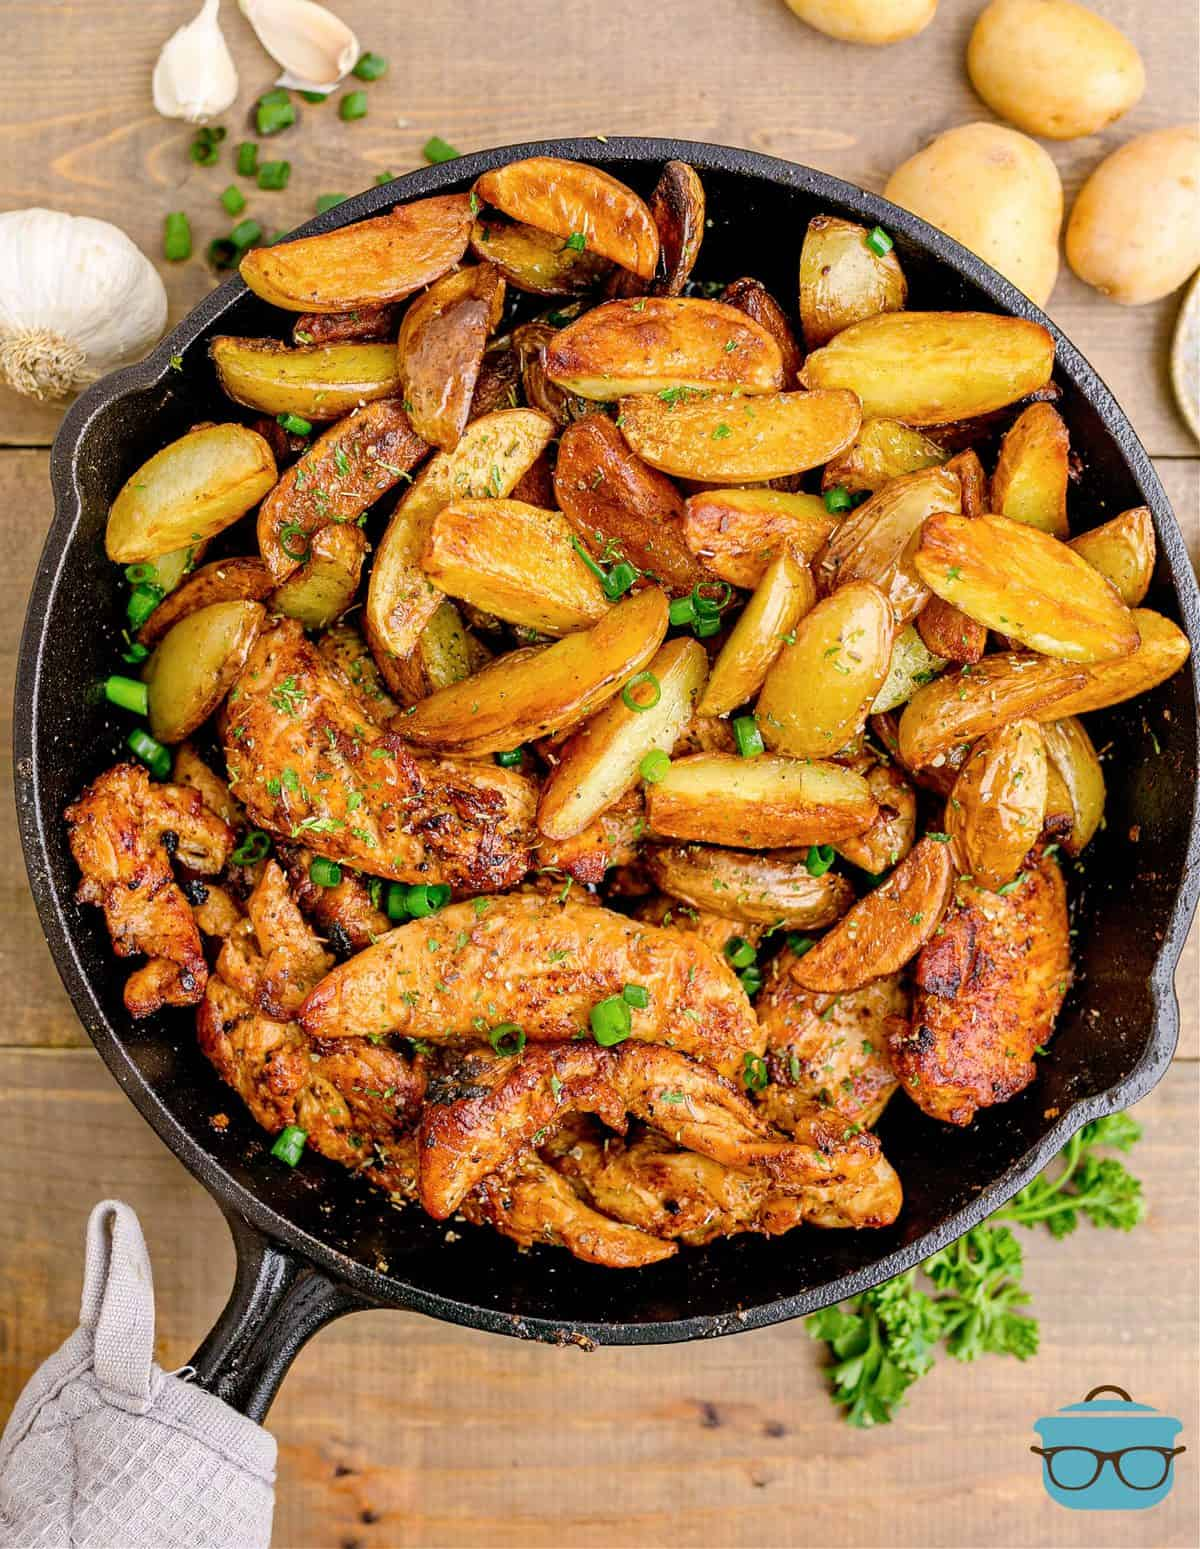 Chicken and Potatoes in skillet overhead with towel around handle of skillet.